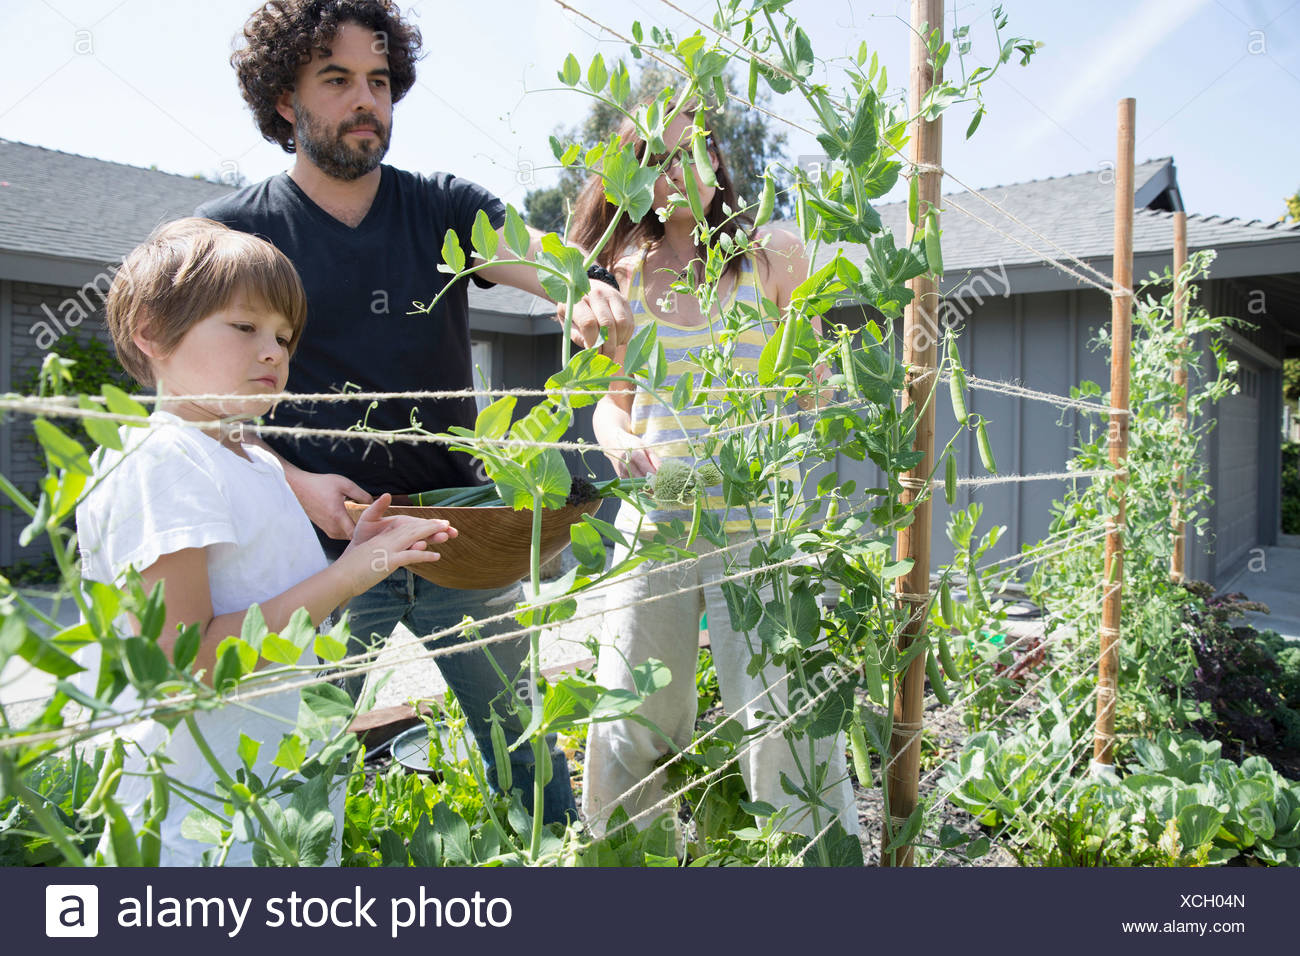 Family with one boy harvesting peas in garden - Stock Image